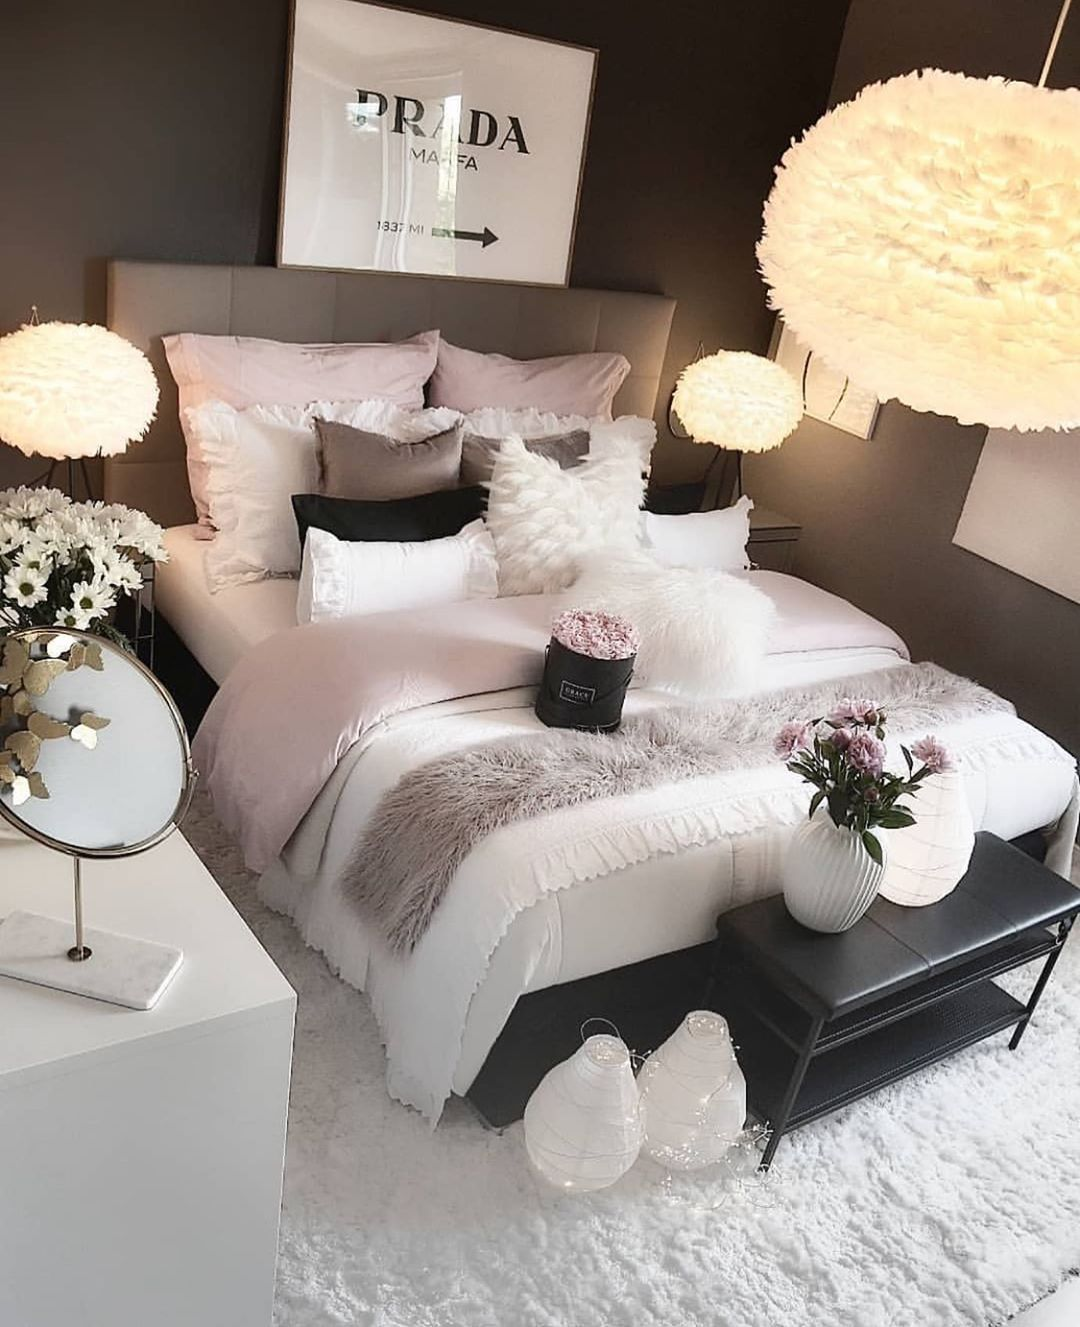 "Photo of Room For Girl Interior Inspo on Instagram: ""Bedroom goals ?? Double tap if you agree! ? Credit: @zeynepshome _____________________________________ #roomforgirl #bedroomideas…"""